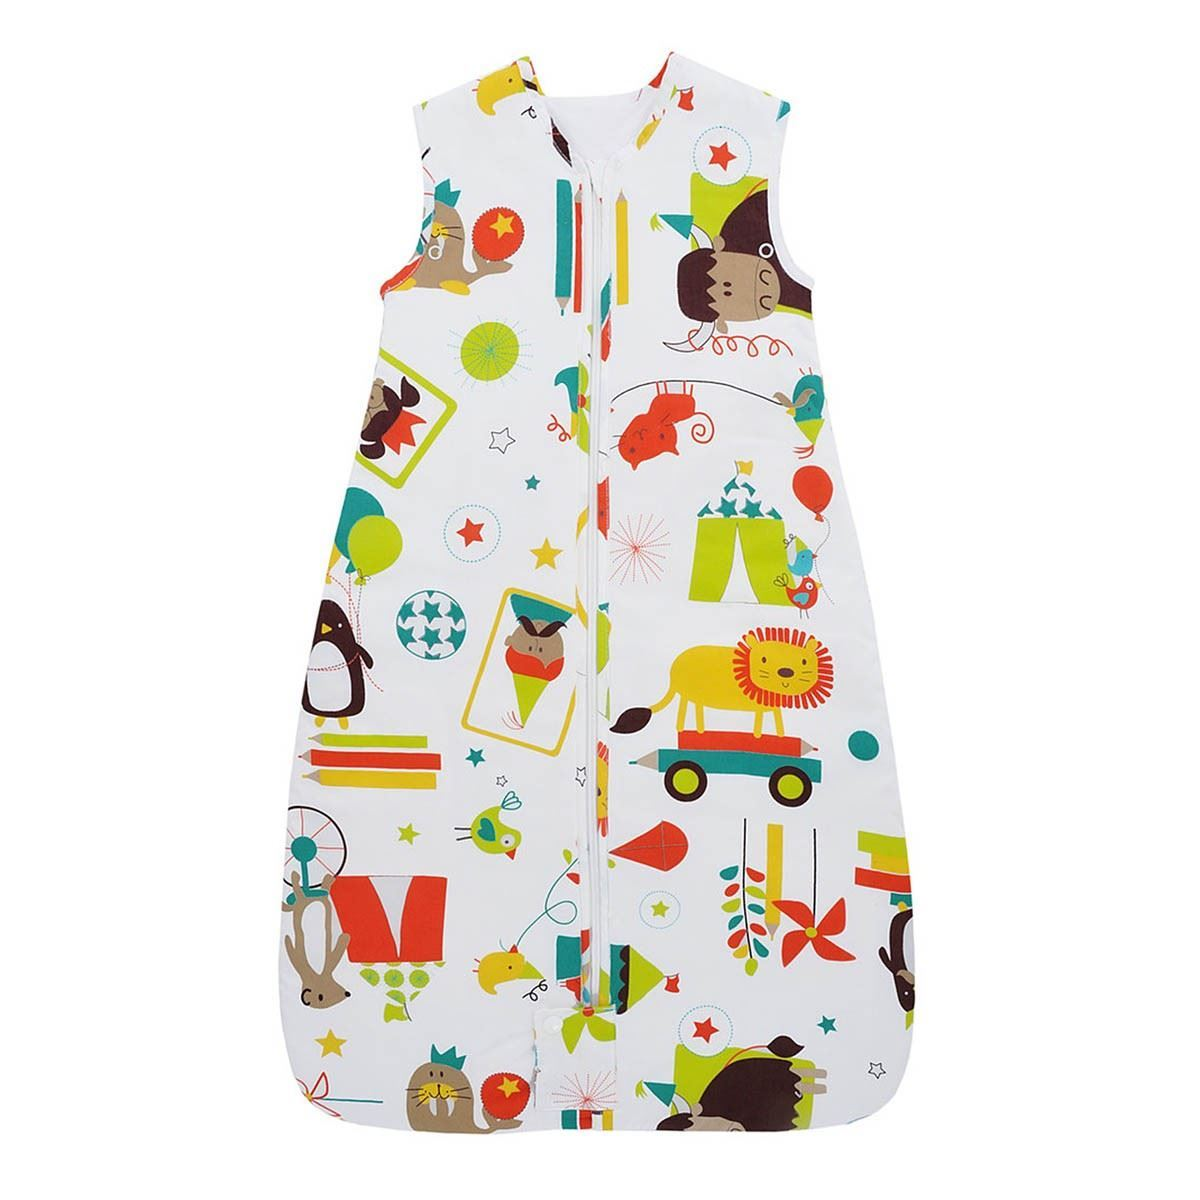 timeless design d3a35 ea25f GROBAG - Baby Sleeping Bags For Travel Carnival